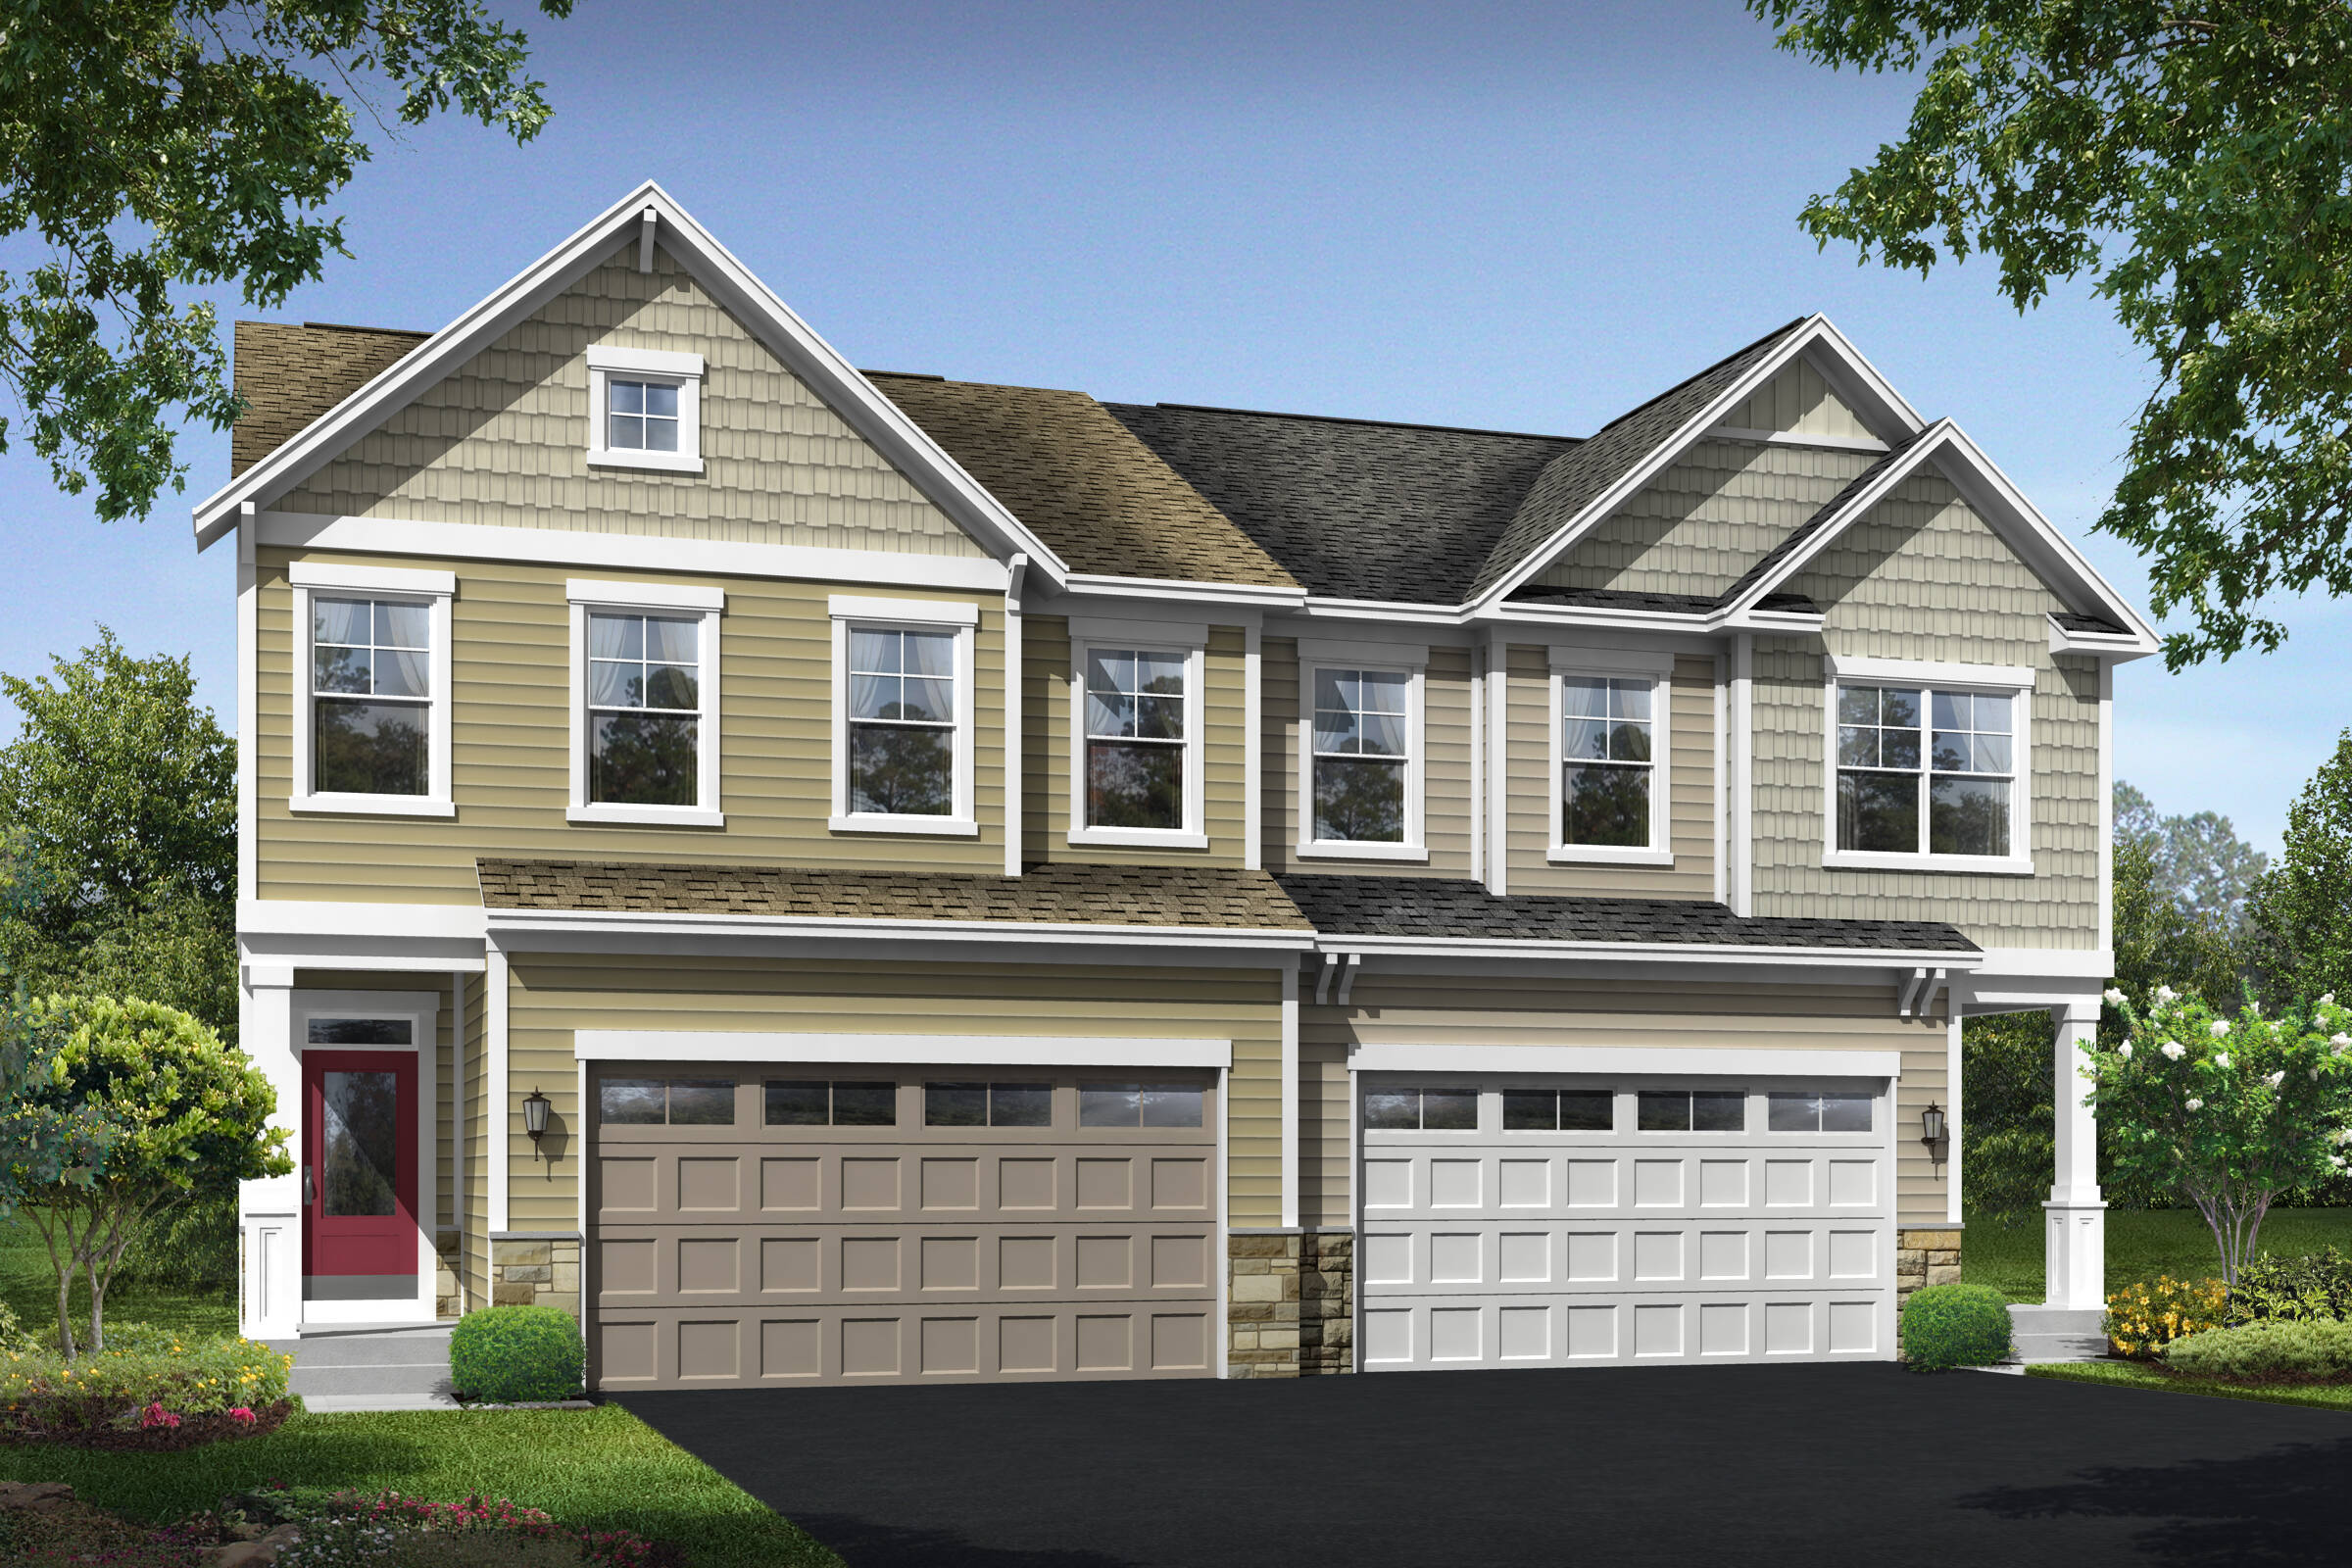 roanoke II a b new homes at villas at wellspring in virginia